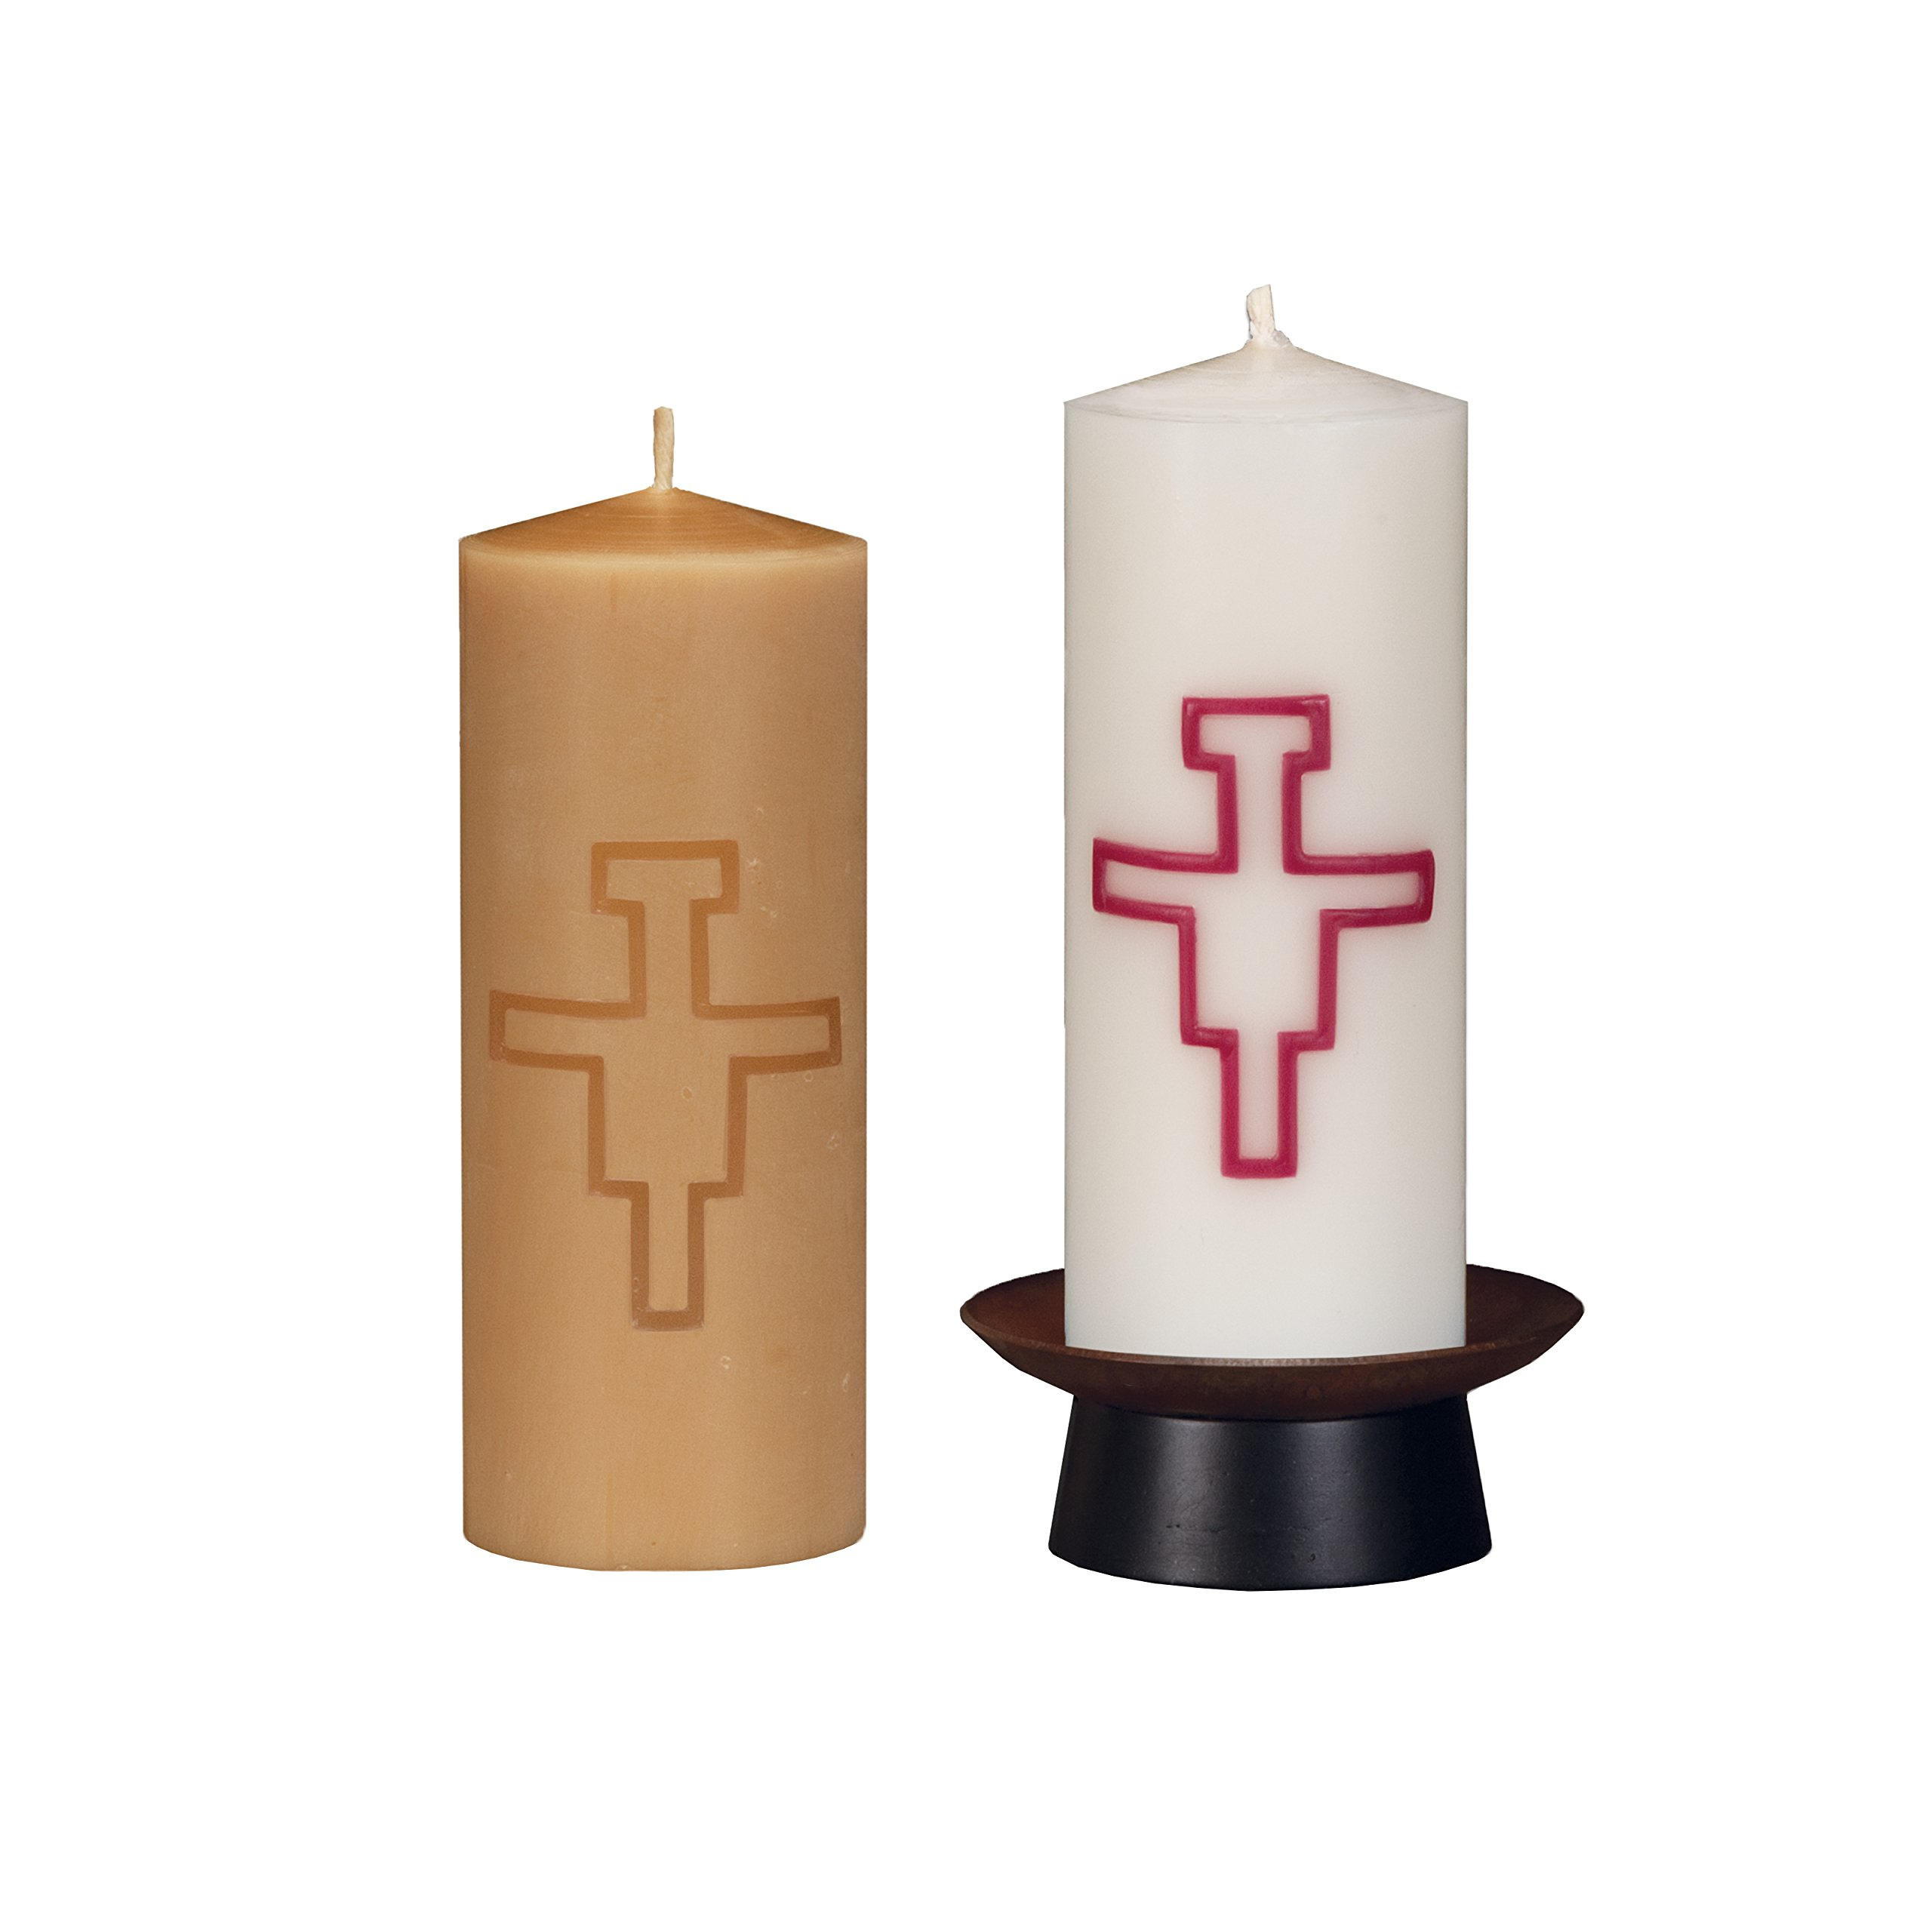 Beeswax Christos™ Candle Set; 2-1/2'' x 6'' candles with base; Assisi™ design in burgundy. Handcrafted in New England. Made in America. by Marklin Candle